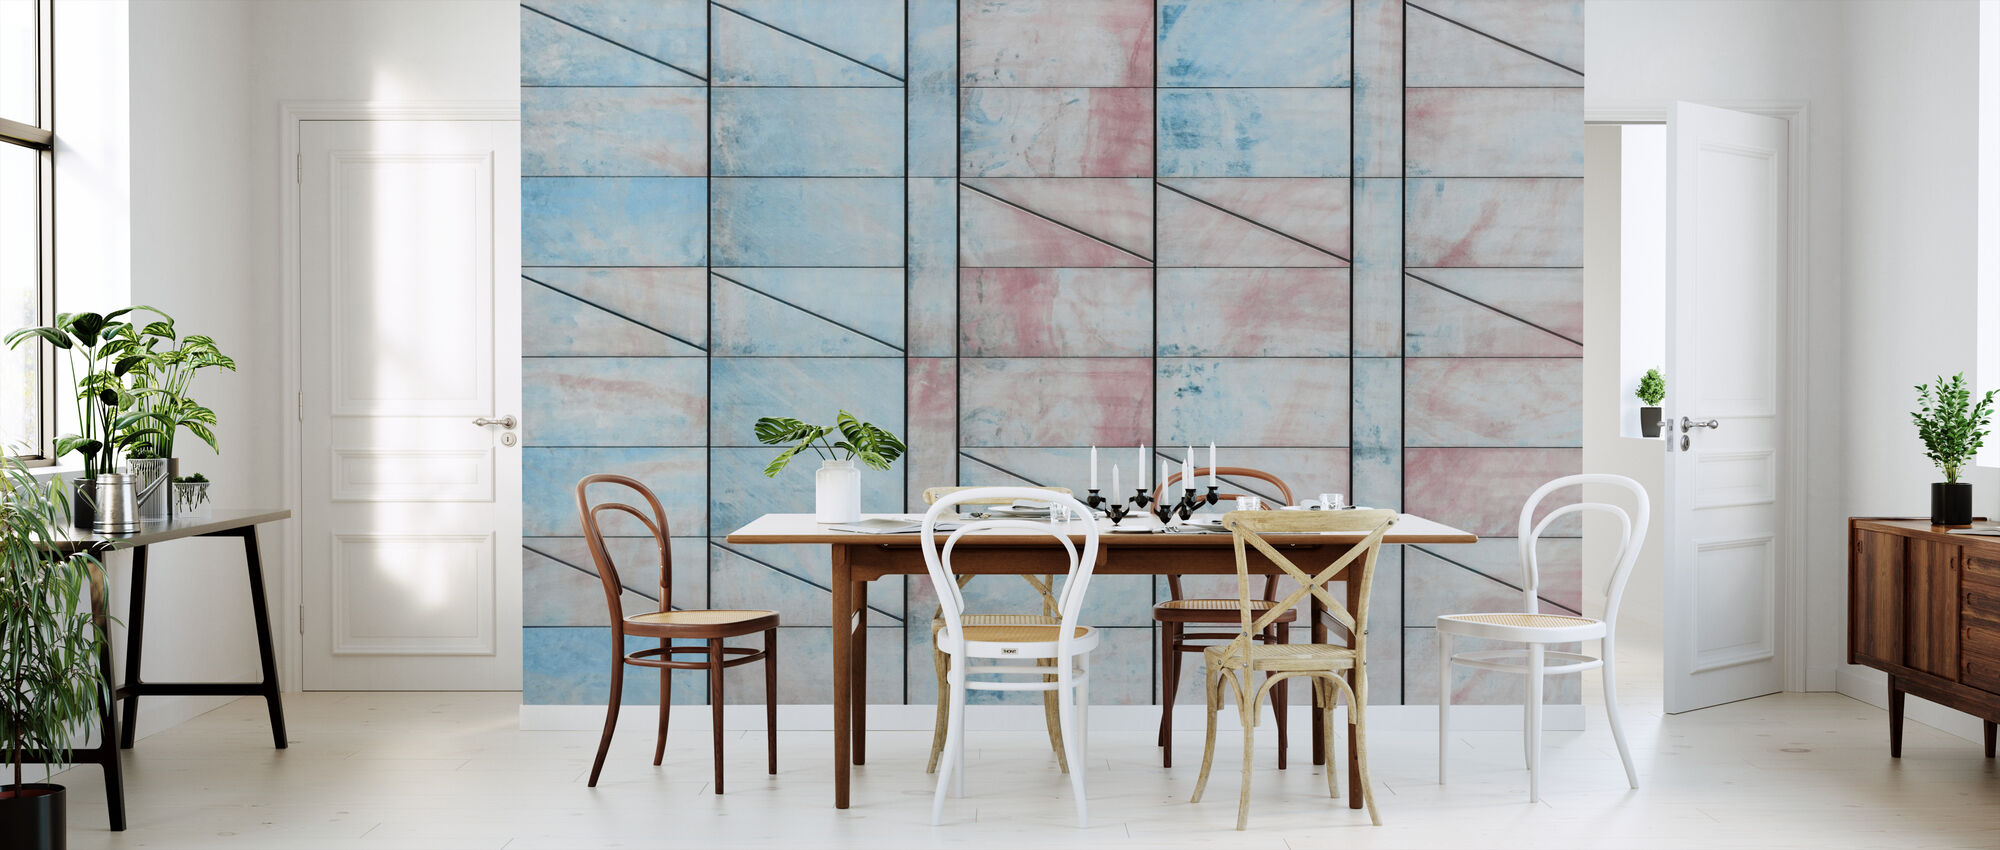 Blue and Red Tiles - Wallpaper - Kitchen